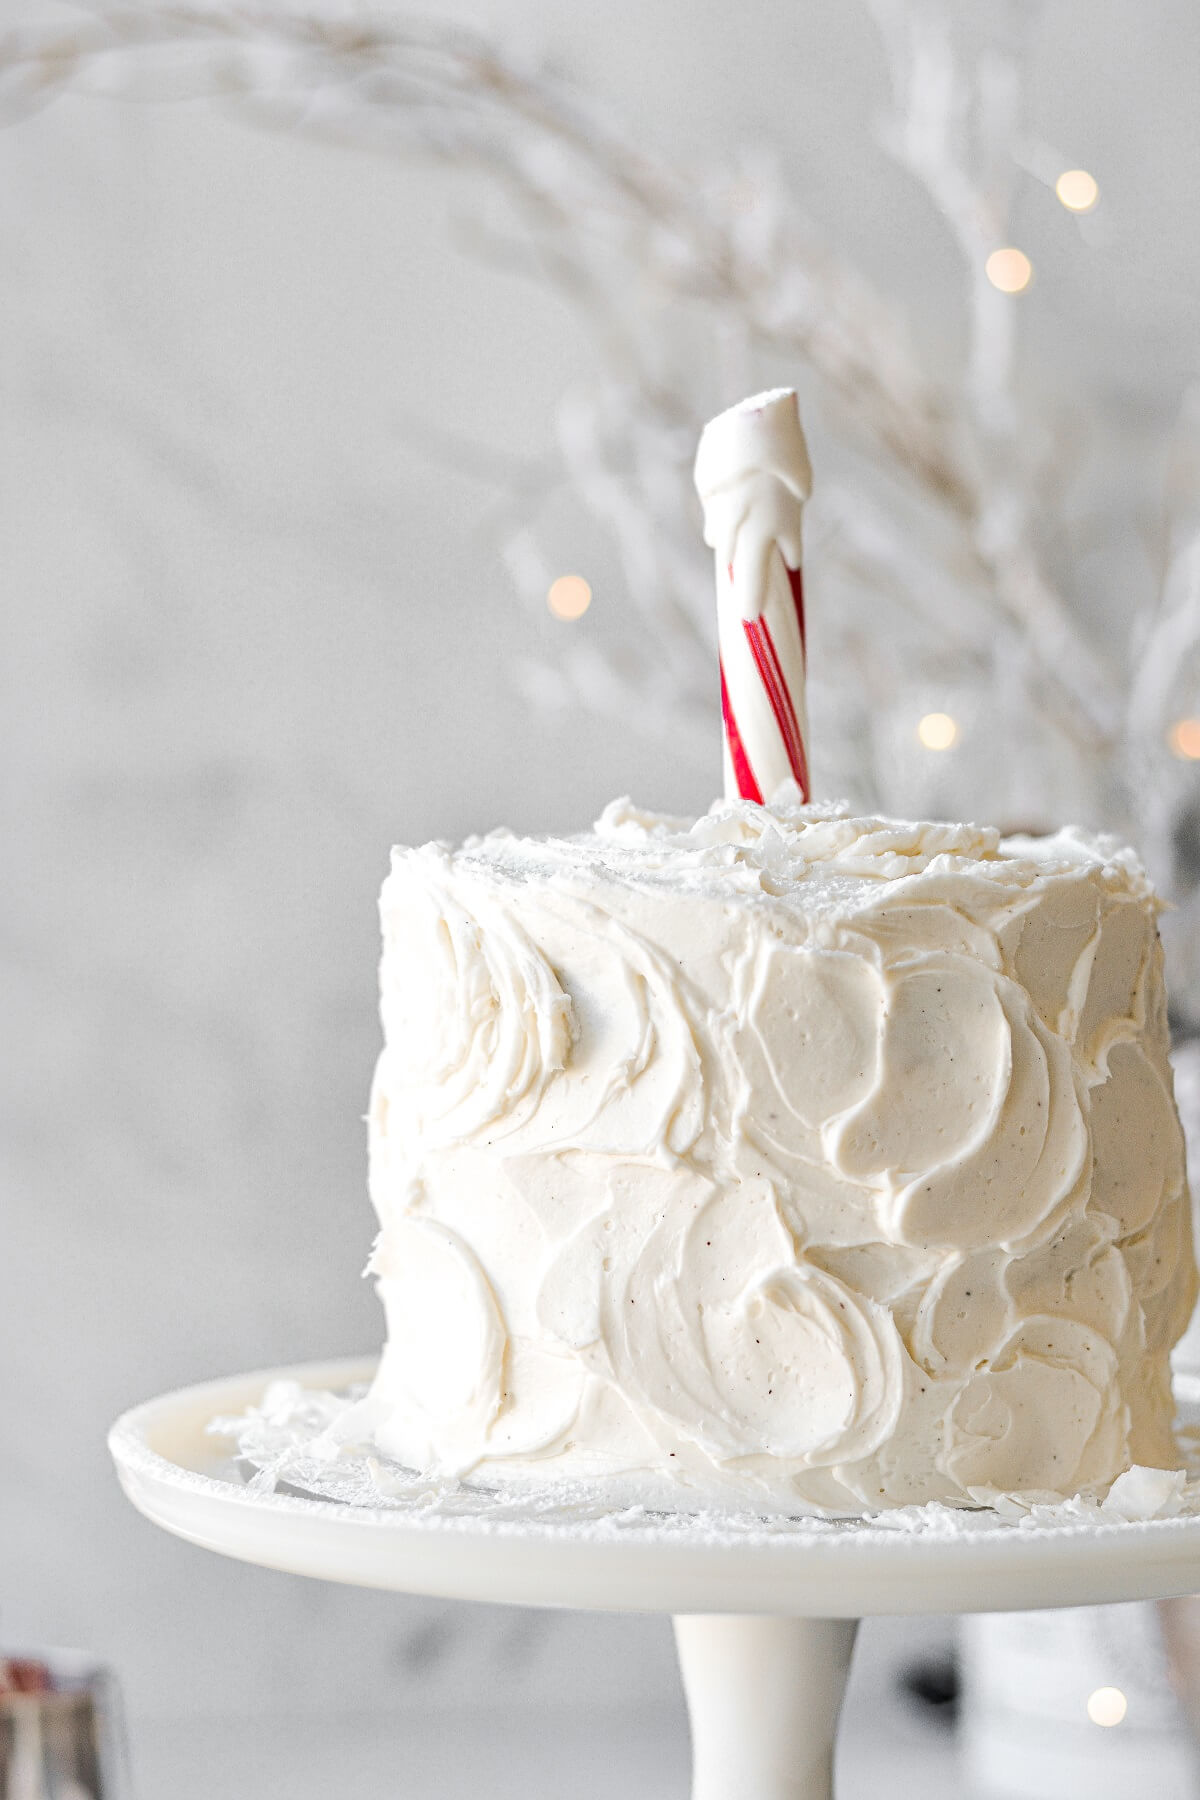 A layer cake with swirls of vanilla buttercream, and a candy cane North Pole on top.